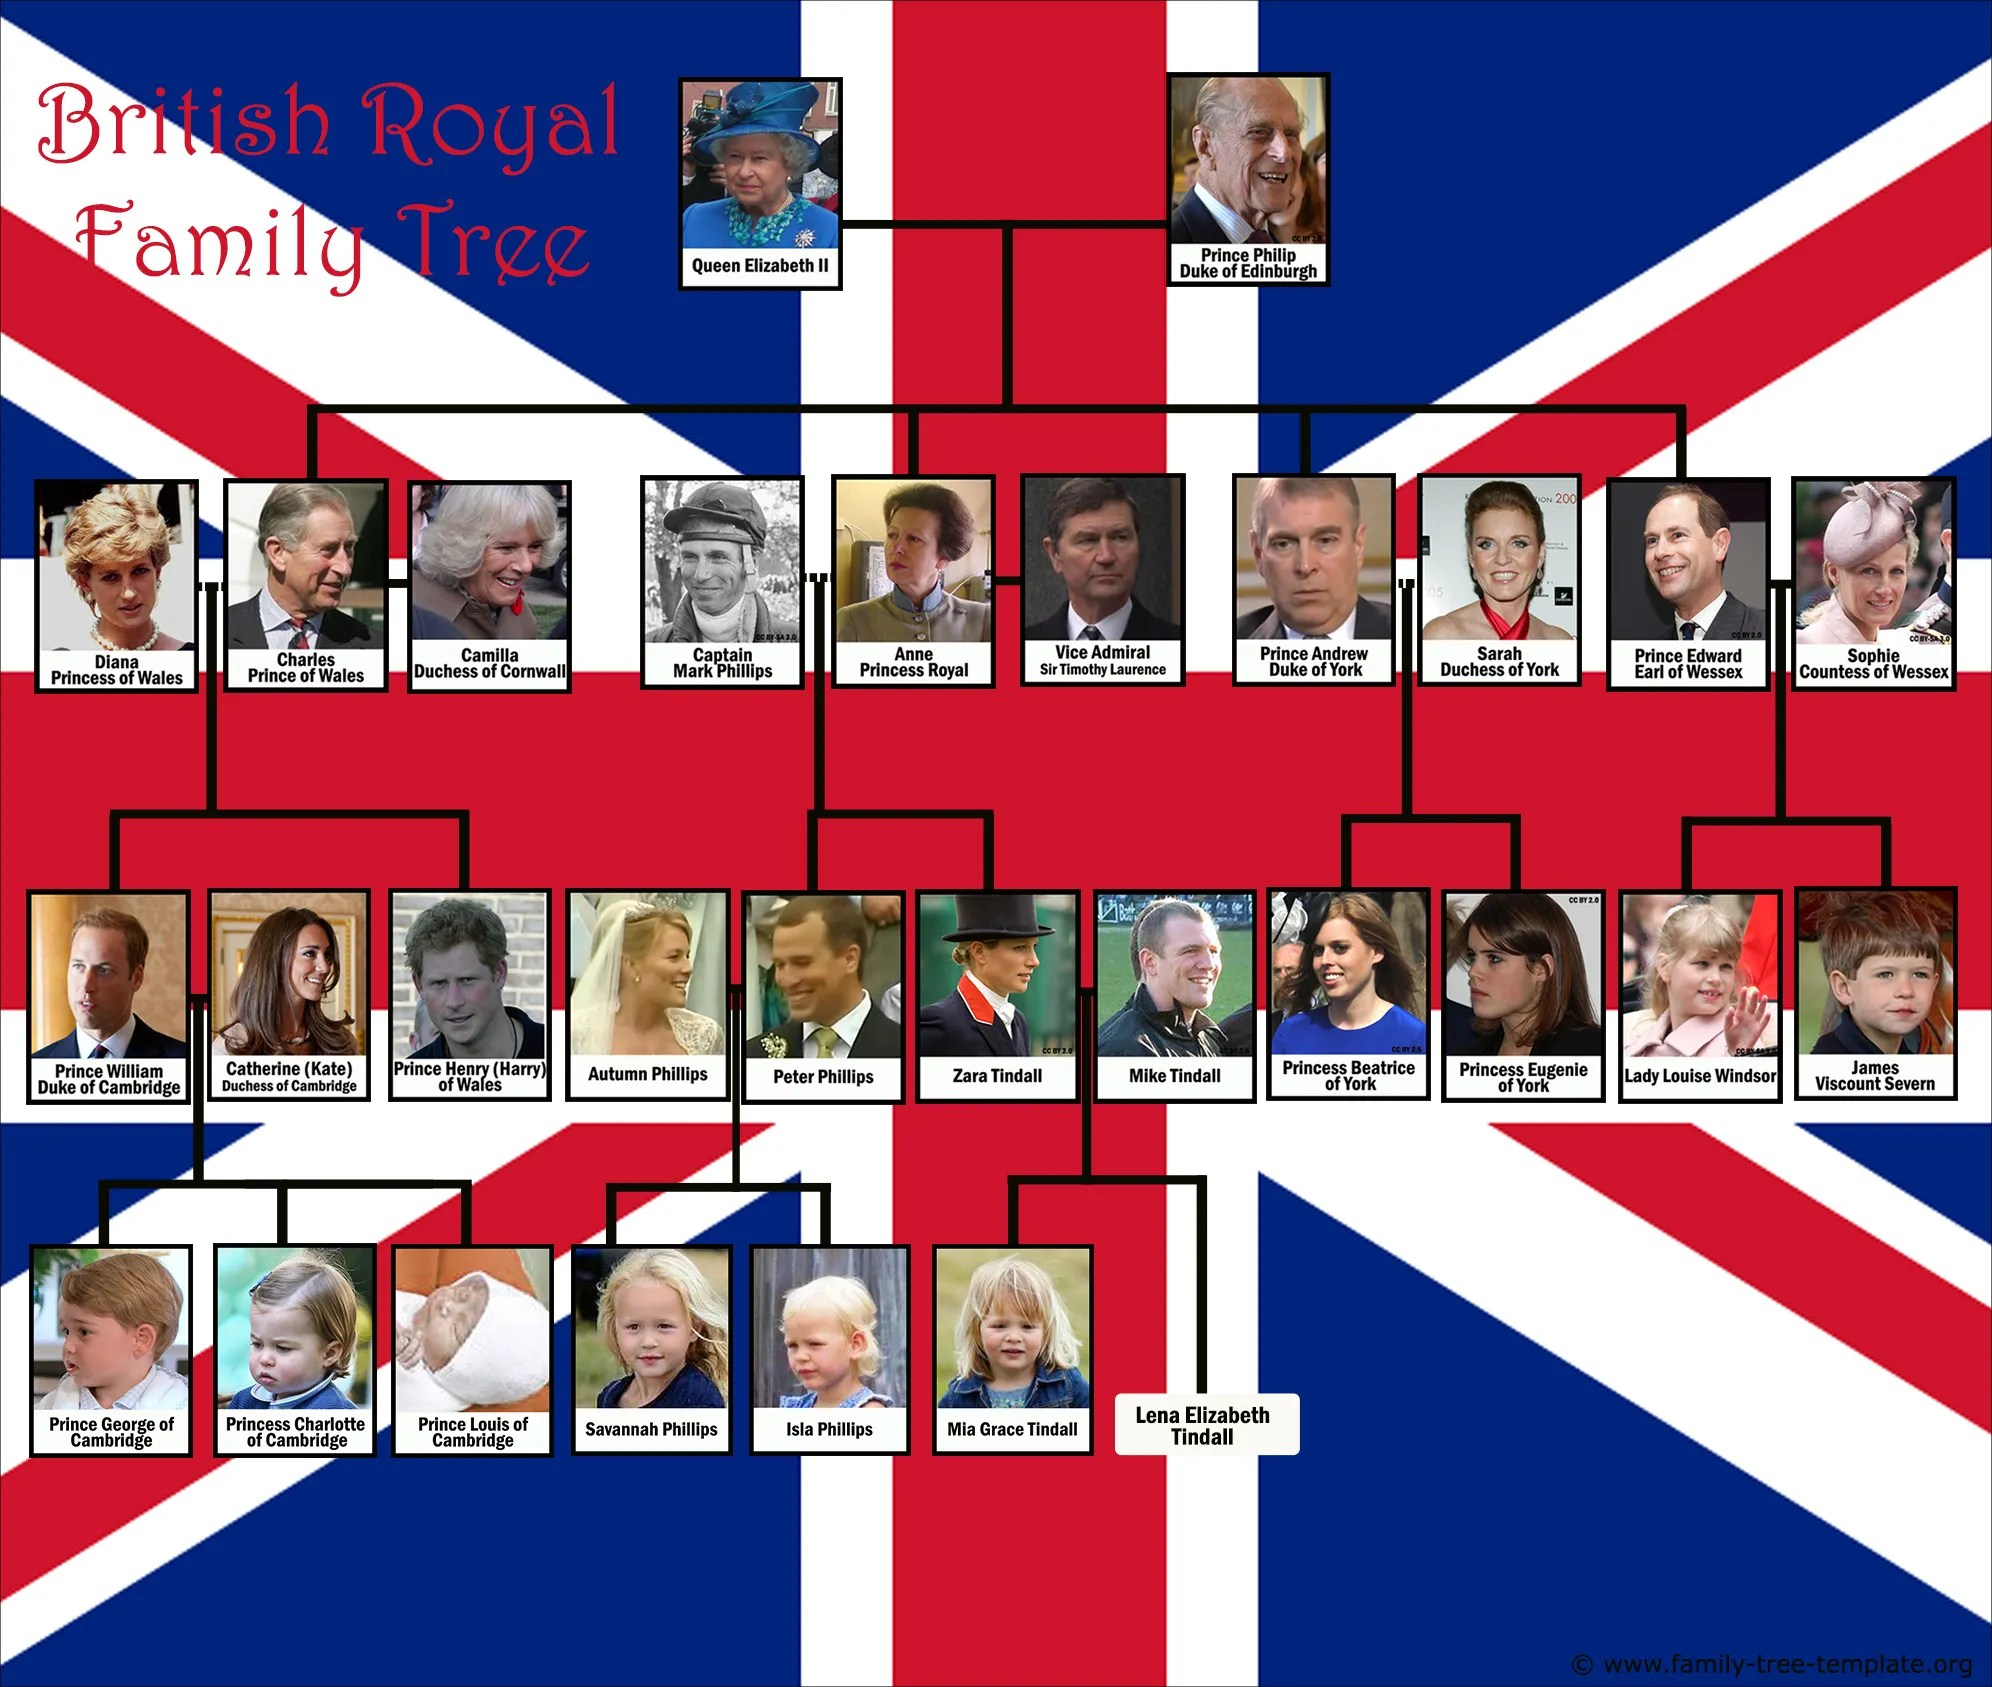 hight resolution of decorative british royal family tree with queen elizabeth ii and decendents